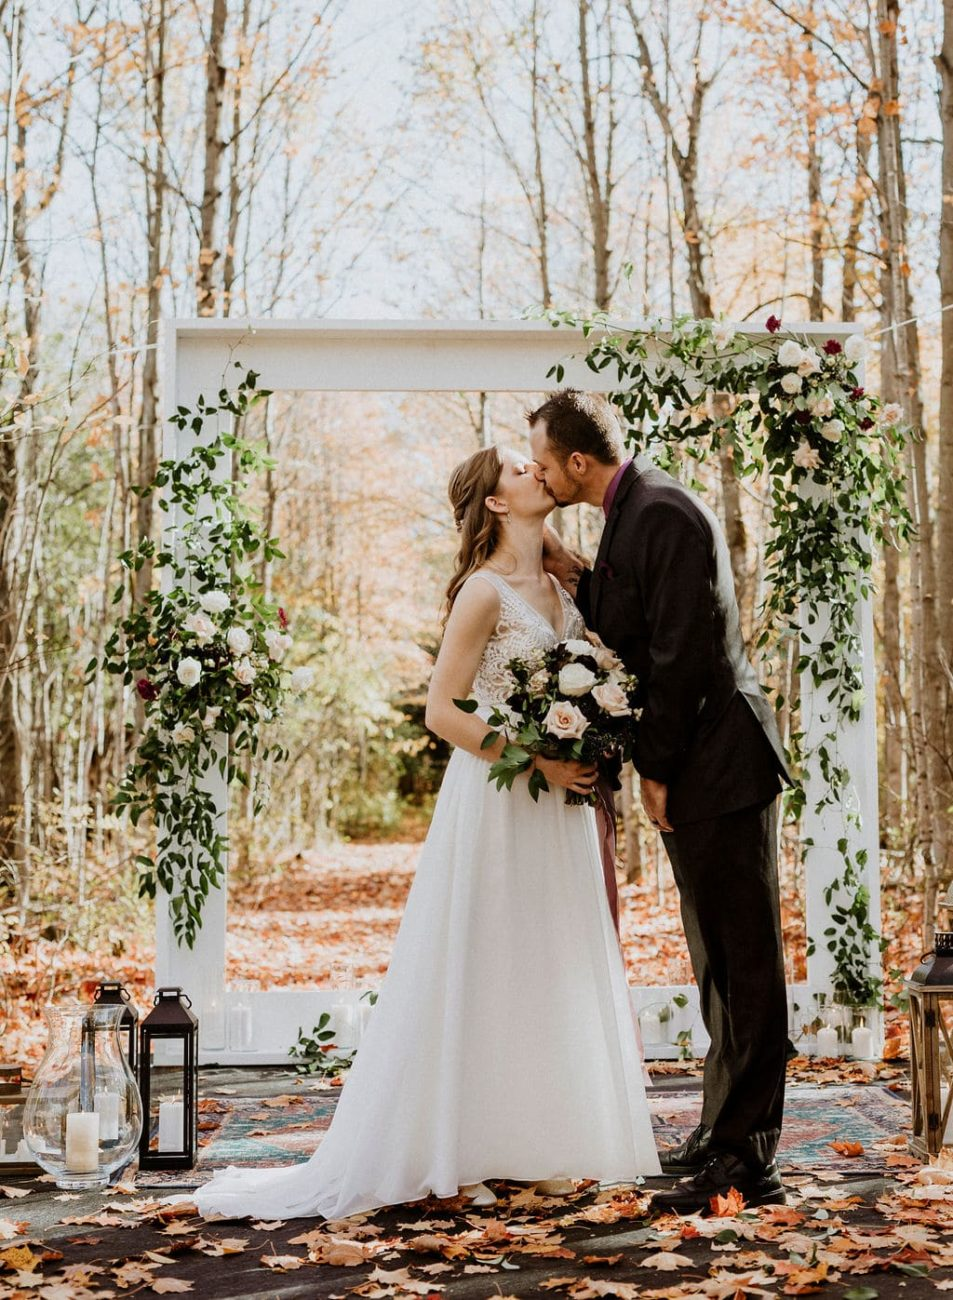 A bride and groom kissing in front of a white square arch in the maple forest